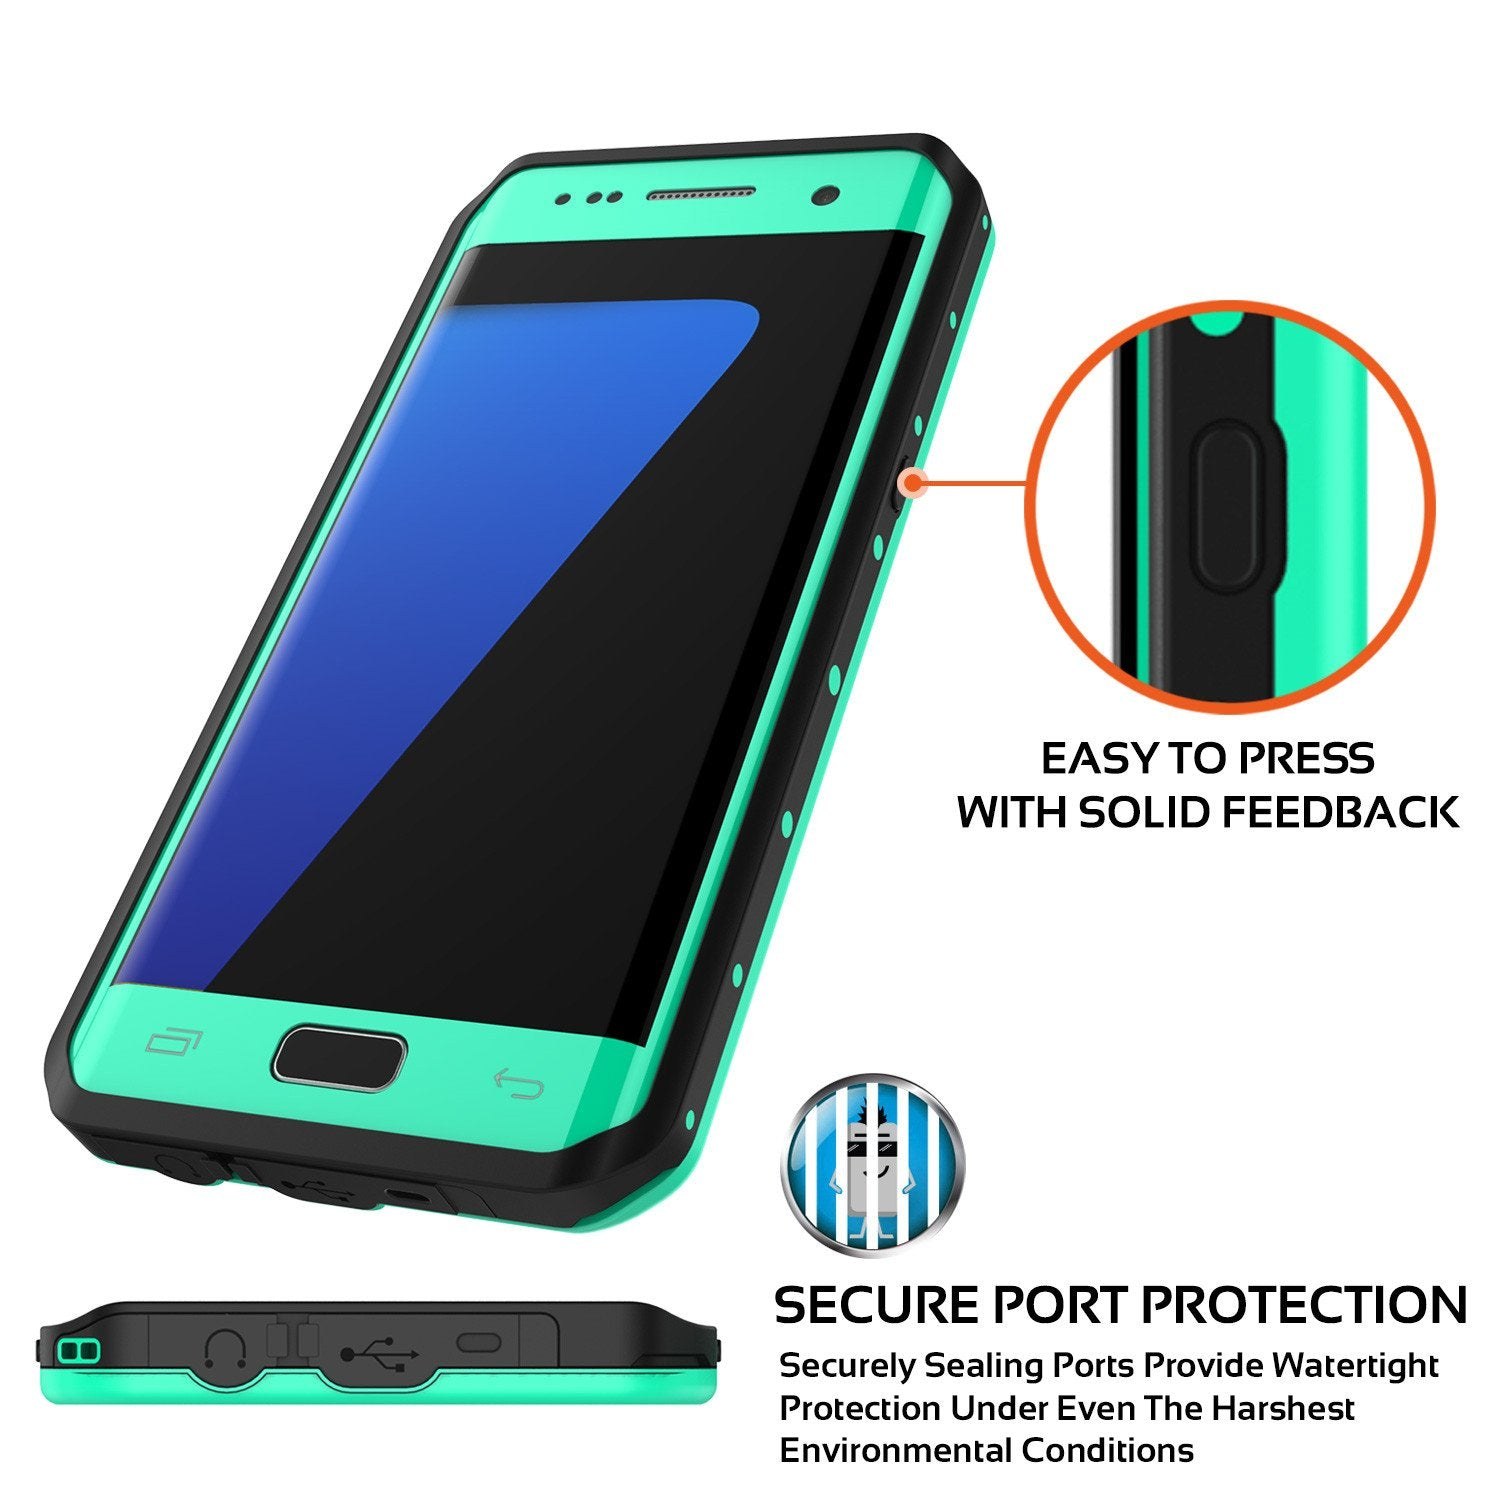 Galaxy S7 EDGE Waterproof Case PunkCase StudStar Teal Thin 6.6ft Underwater IP68 Shock/Snow Proof - PunkCase NZ